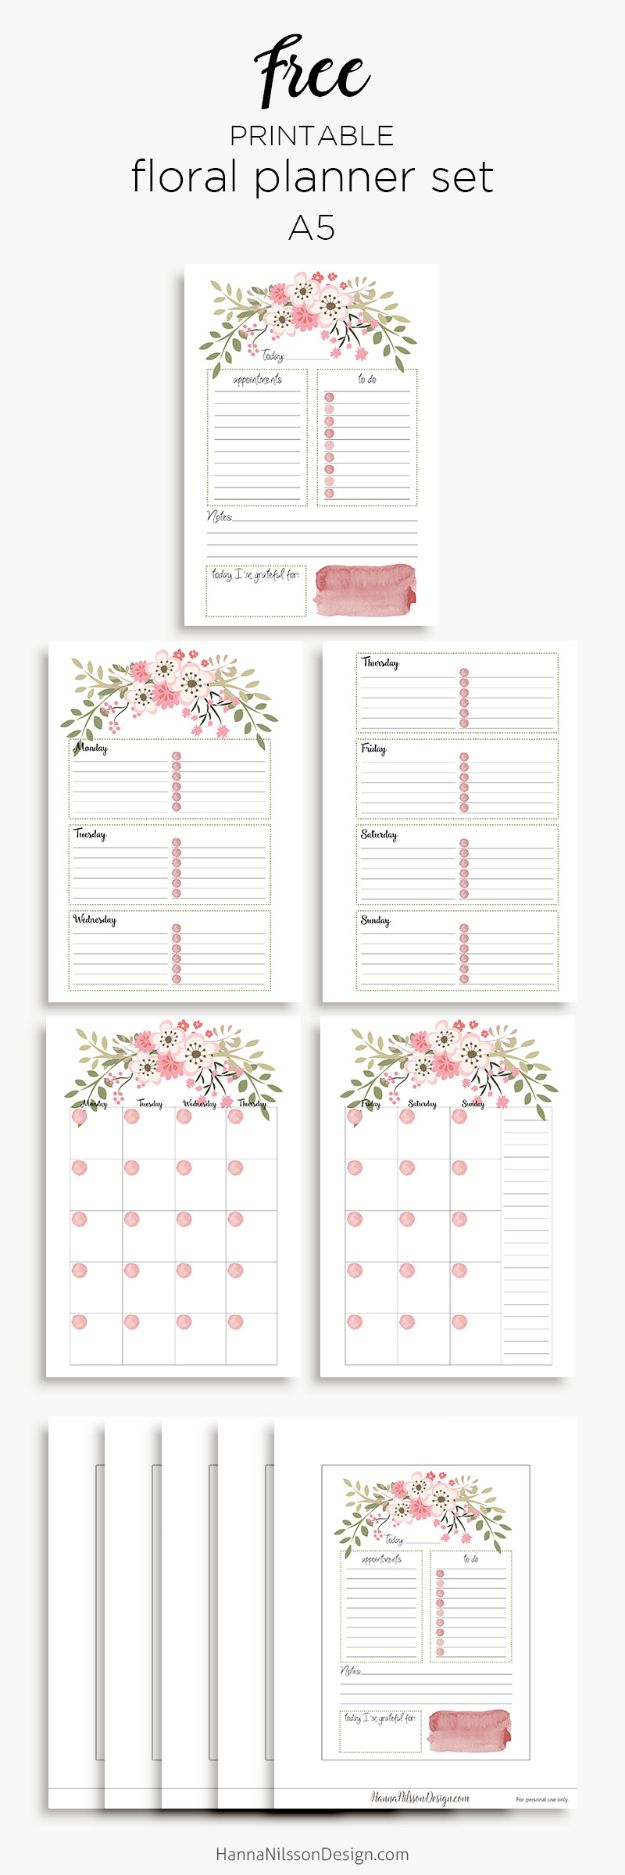 DIY Calendars - Pink Floral Planner Calendar Inserts - Homemade Calender Ideas That Make Great Cheap Gifts for Christmas - Desk, Wall and Glass Dry Erase Organizing Calendar Projects With Step by Step Tutorials - Paint, Stamp, Magnetic, Family Planner and Organizer #diycalendar #diyideas #crafts #calendars #organizing #diygifts #calendars #diyideas